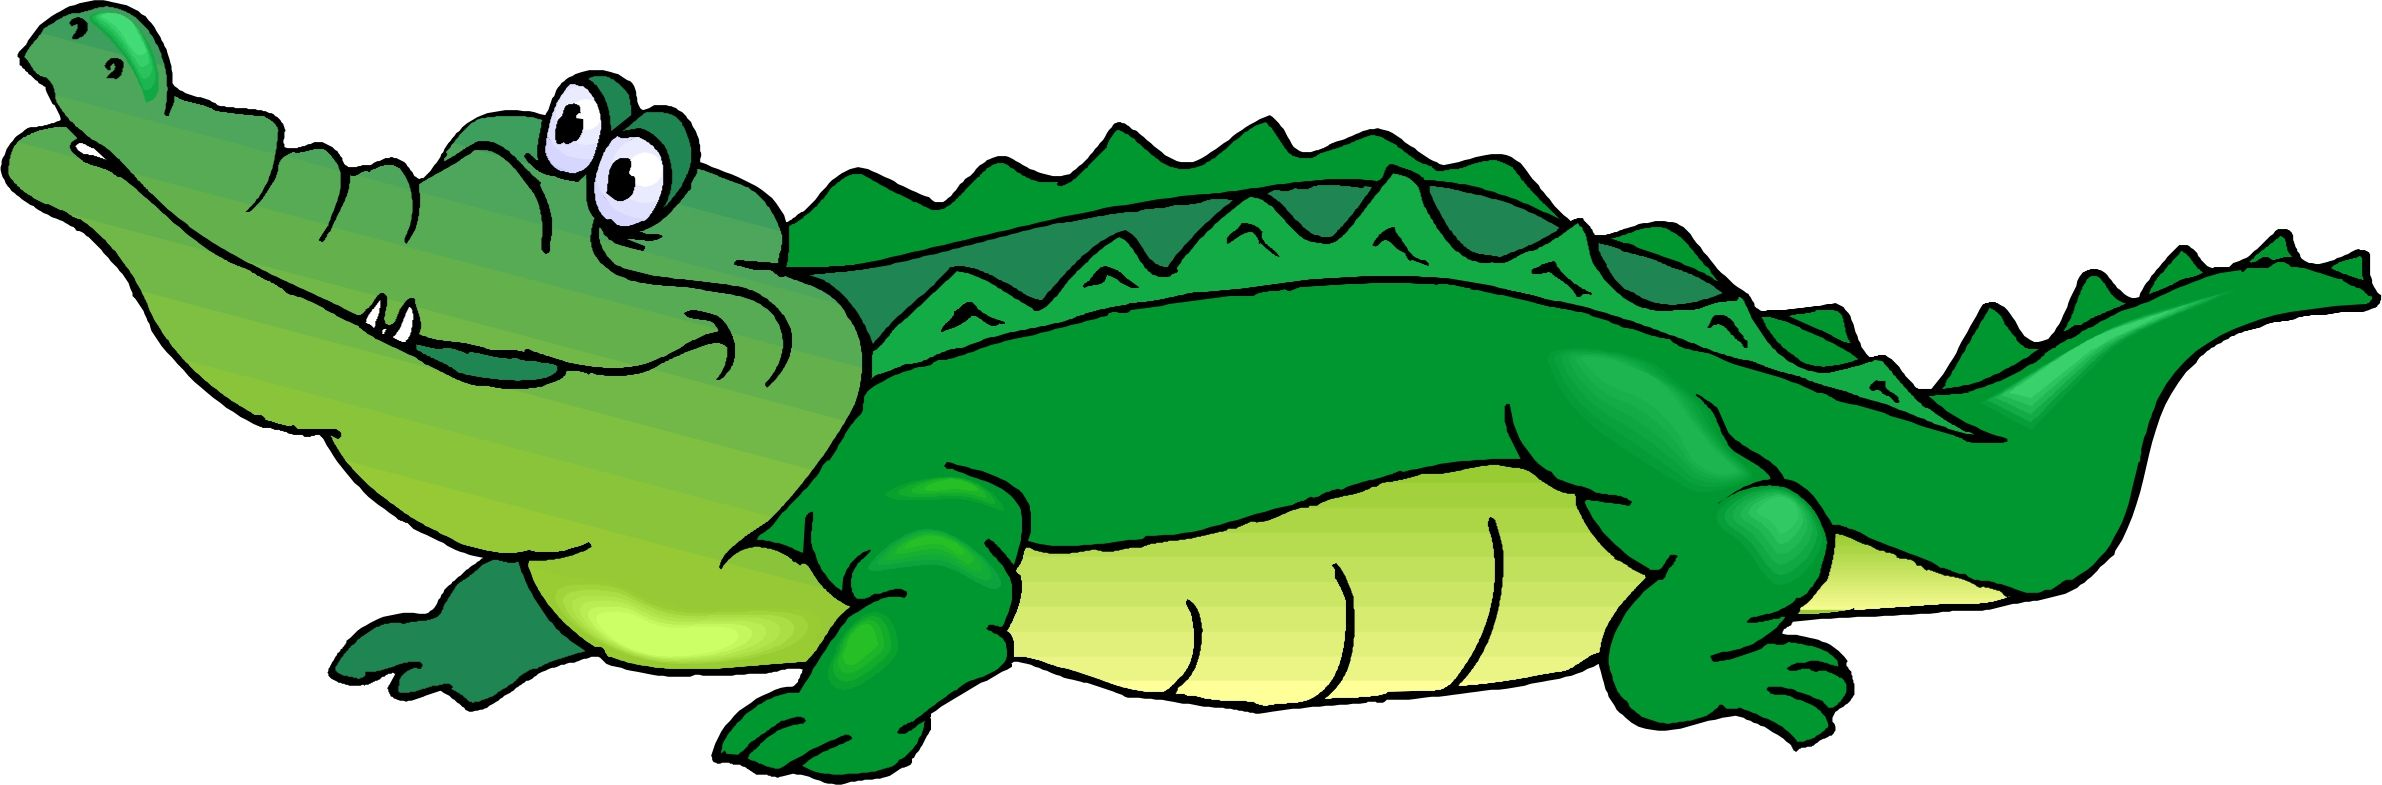 Gator clipart. Clip art use these